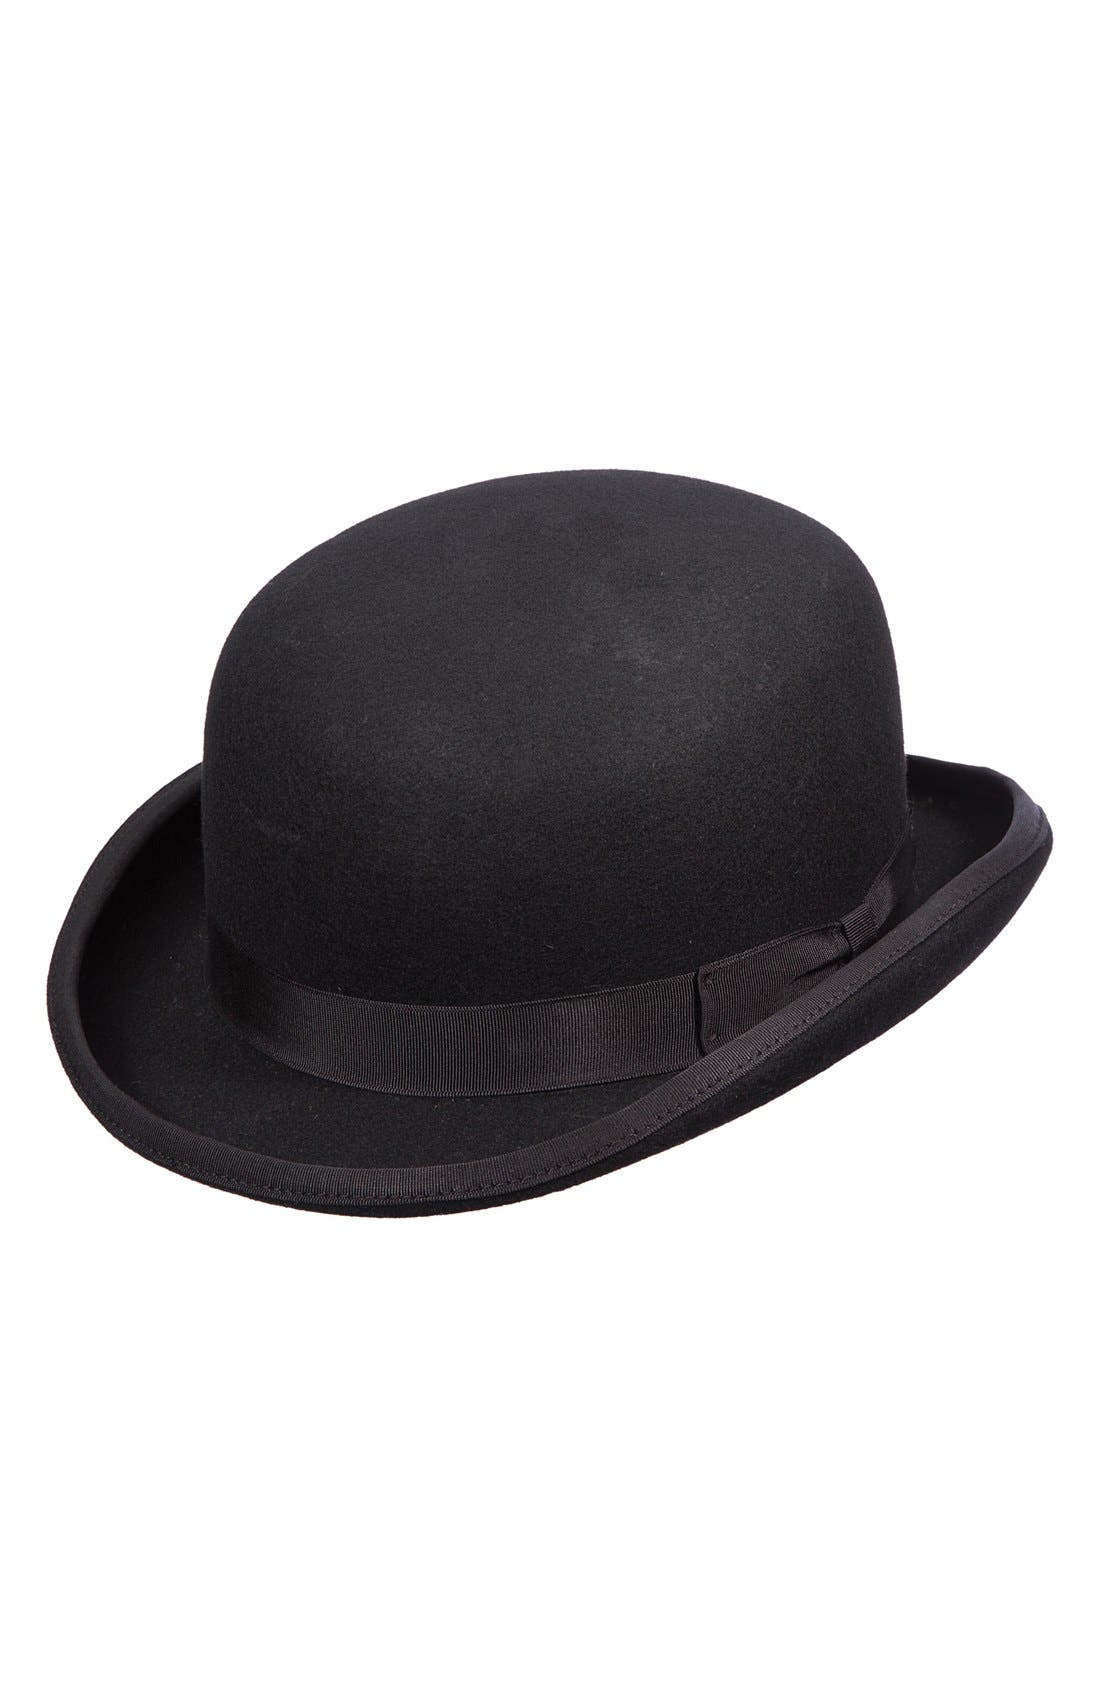 Steampunk Hats for Men | Top Hat, Bowler, Masks Mens Scala Wool Felt Bowler Hat - Black $51.00 AT vintagedancer.com